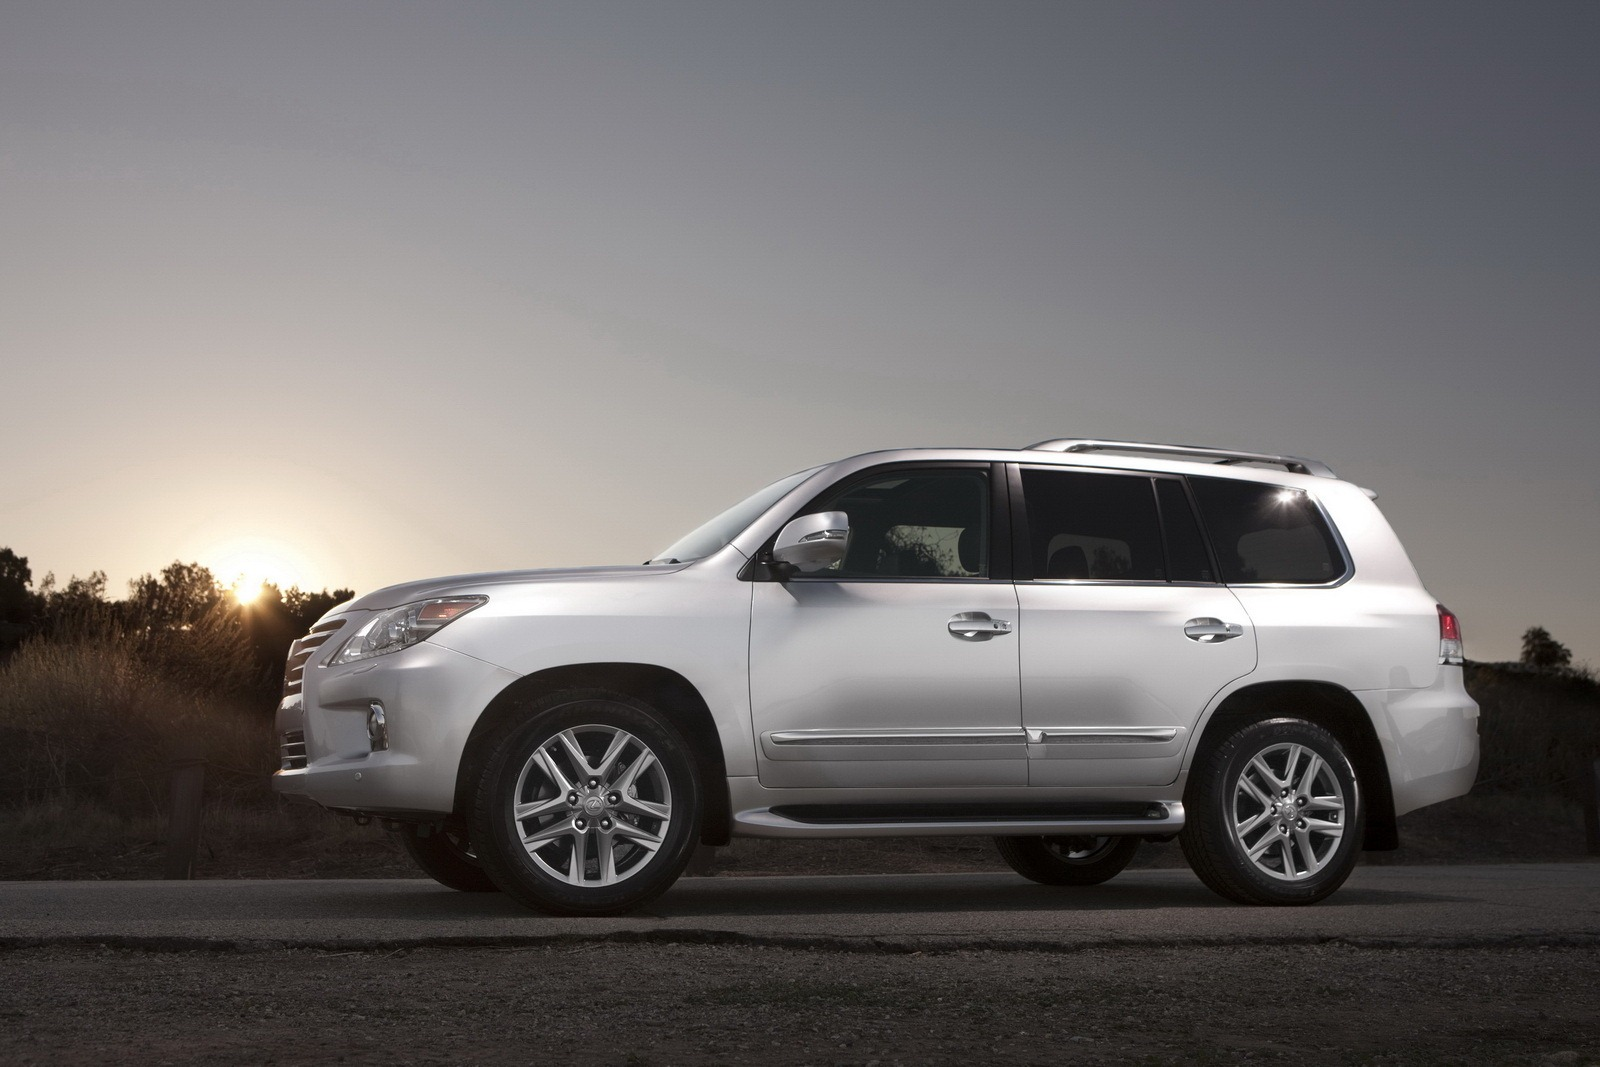 Luxury Suvs Vehicle: 2013 Lexus LX 570 Luxury SUV – An Overview